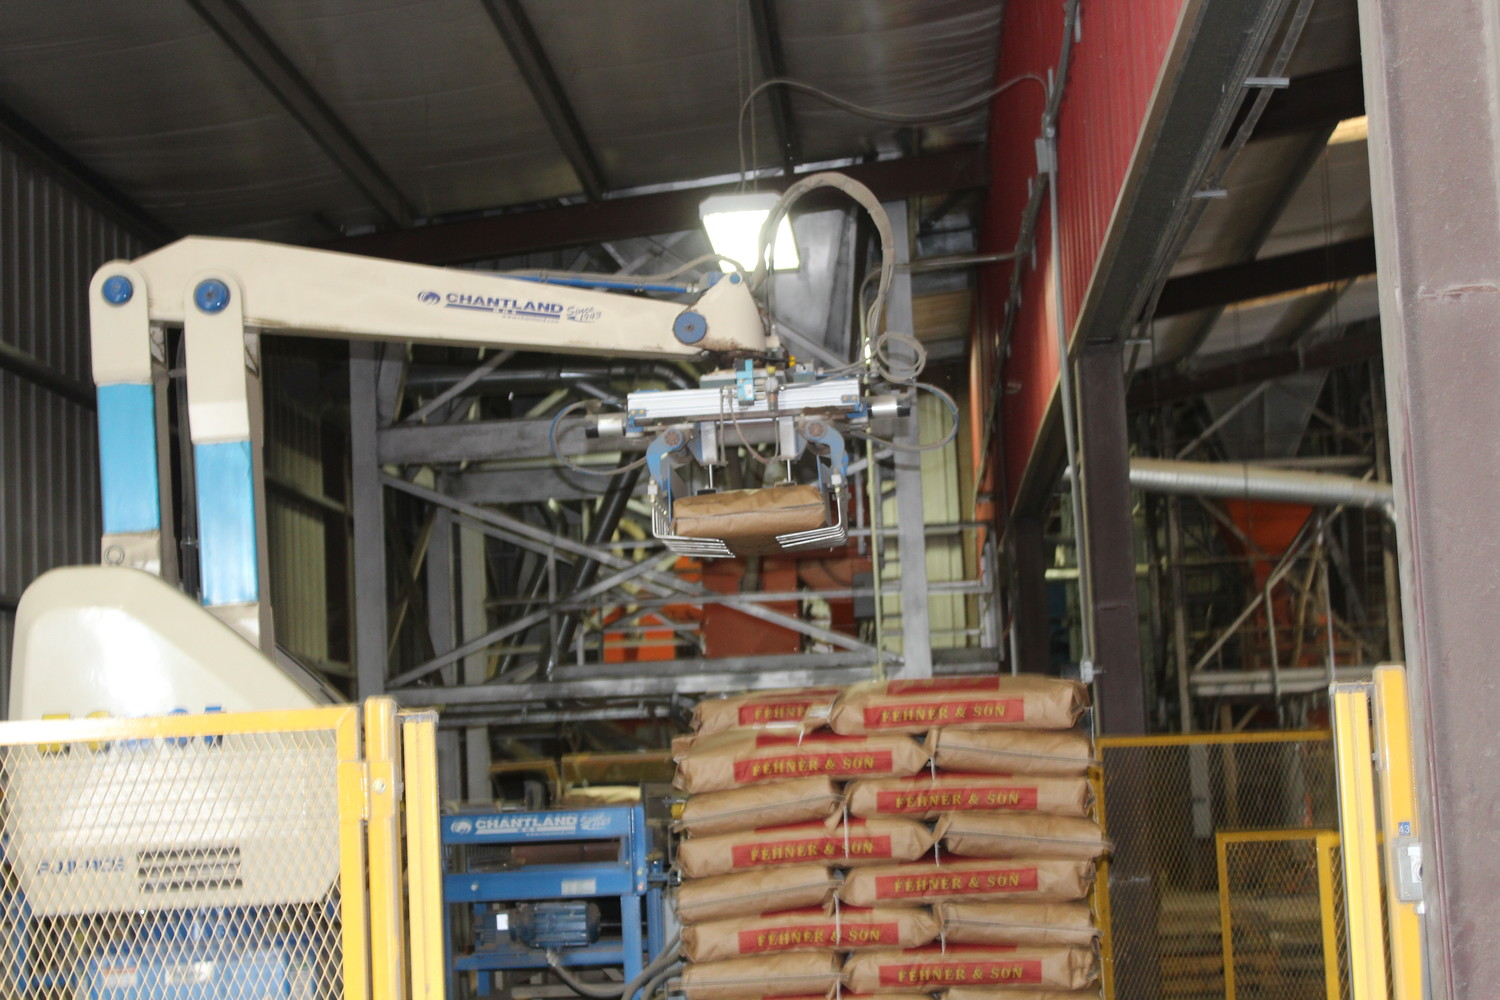 In 2007, this robot started the automation process at Fehner. The robot stacks feed bags, and then 8 different fork trucks load the pallets and store them around the property